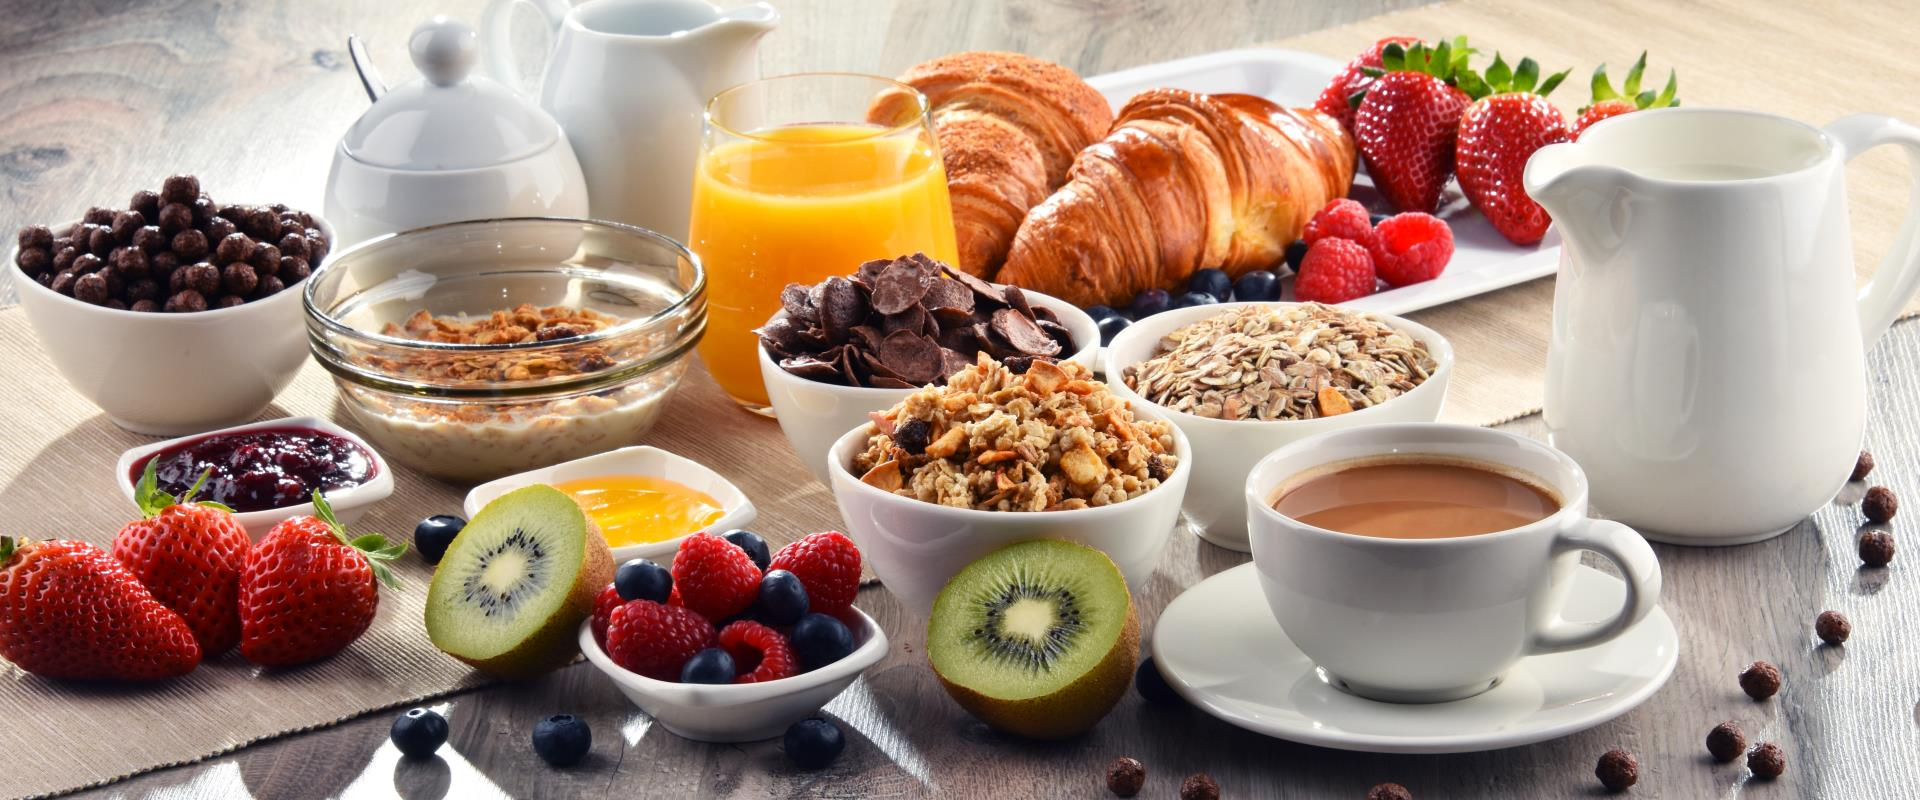 Free breakfast for Best Western Rewards ® Platinum, Diamond and Diamond Select members - Best Western Antares Hotel Concorde Milan